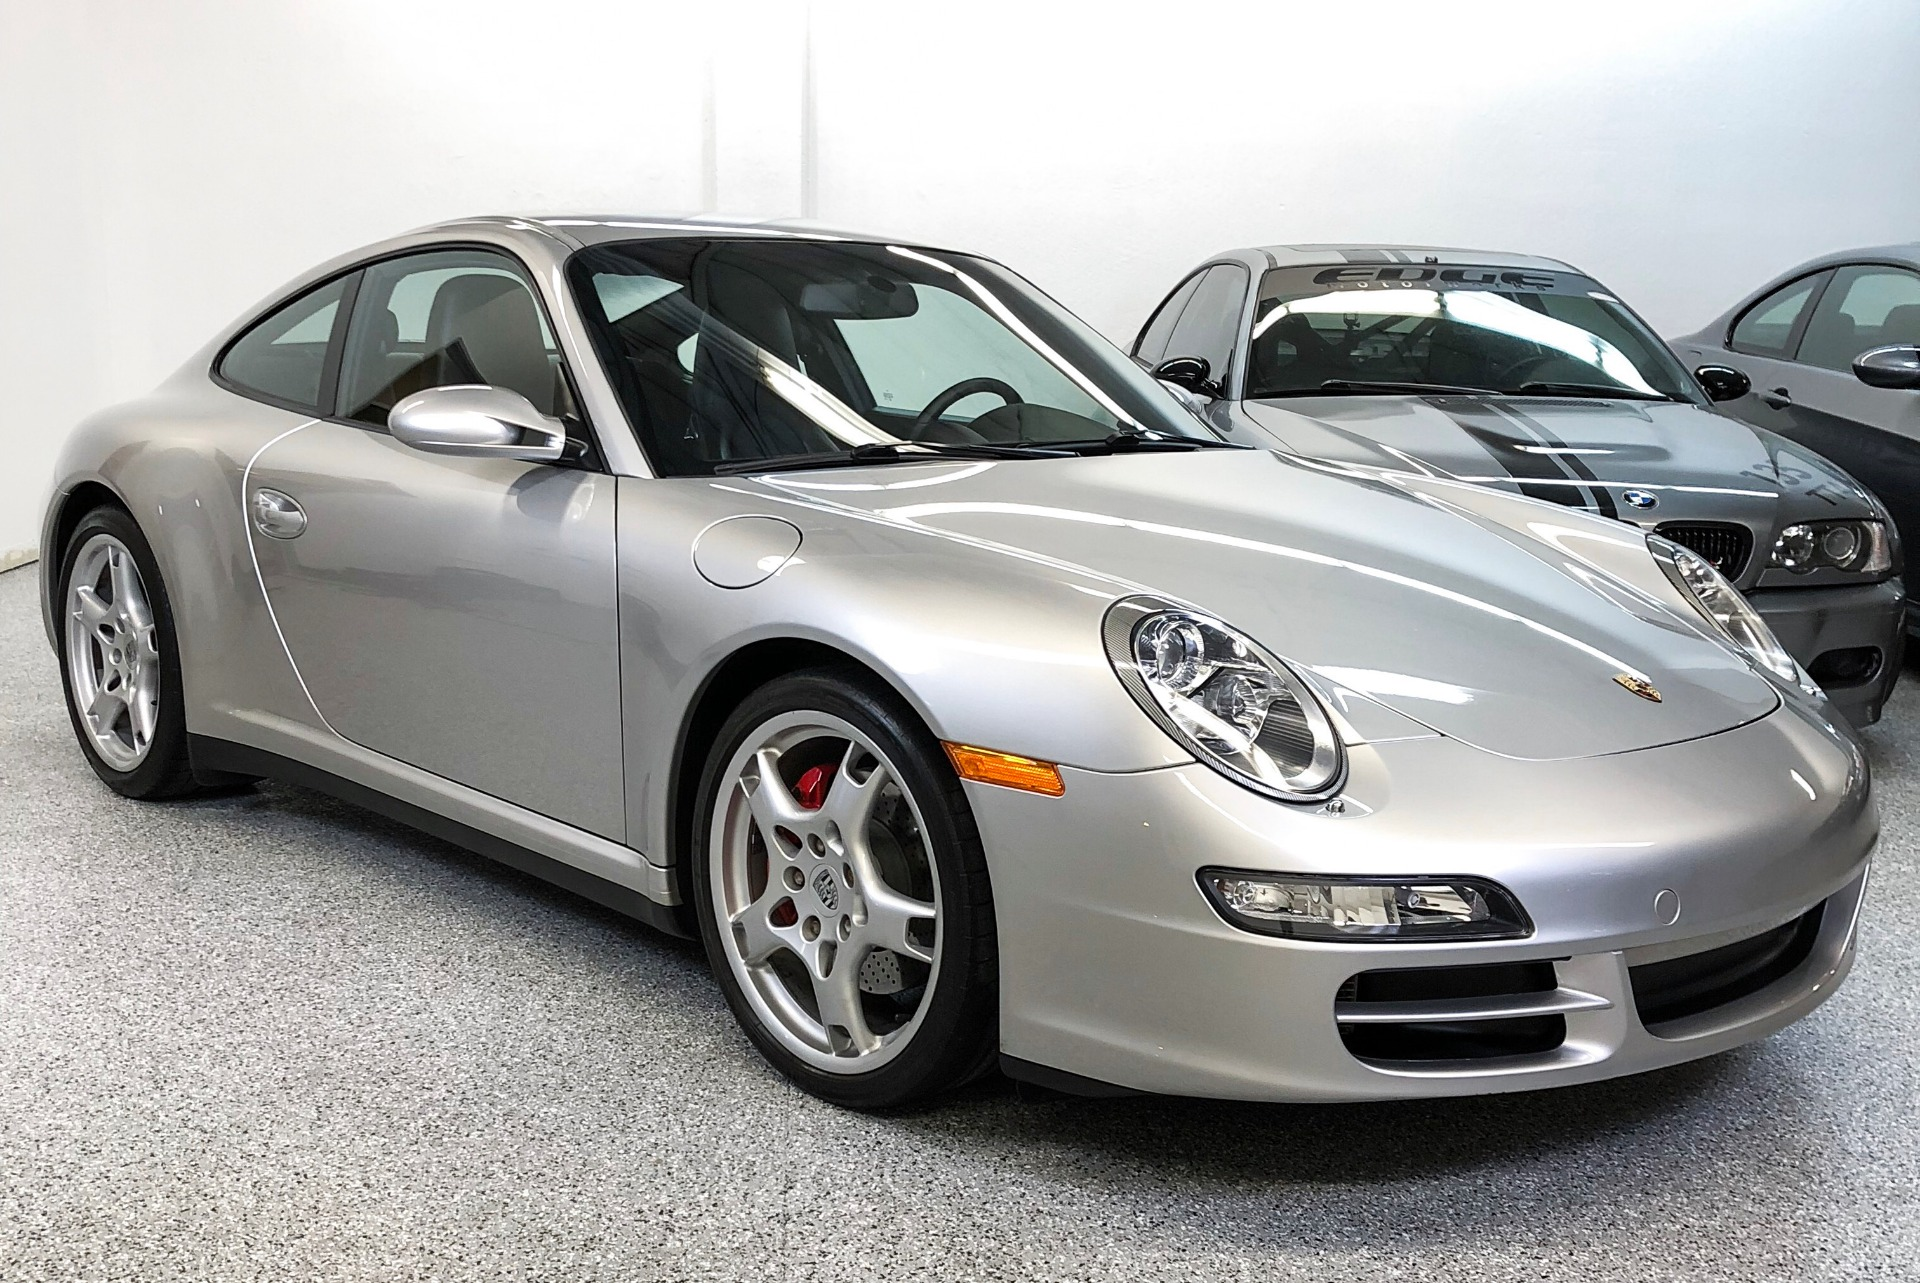 2006 porsche 911 carrera 4s stock 68 for sale near. Black Bedroom Furniture Sets. Home Design Ideas